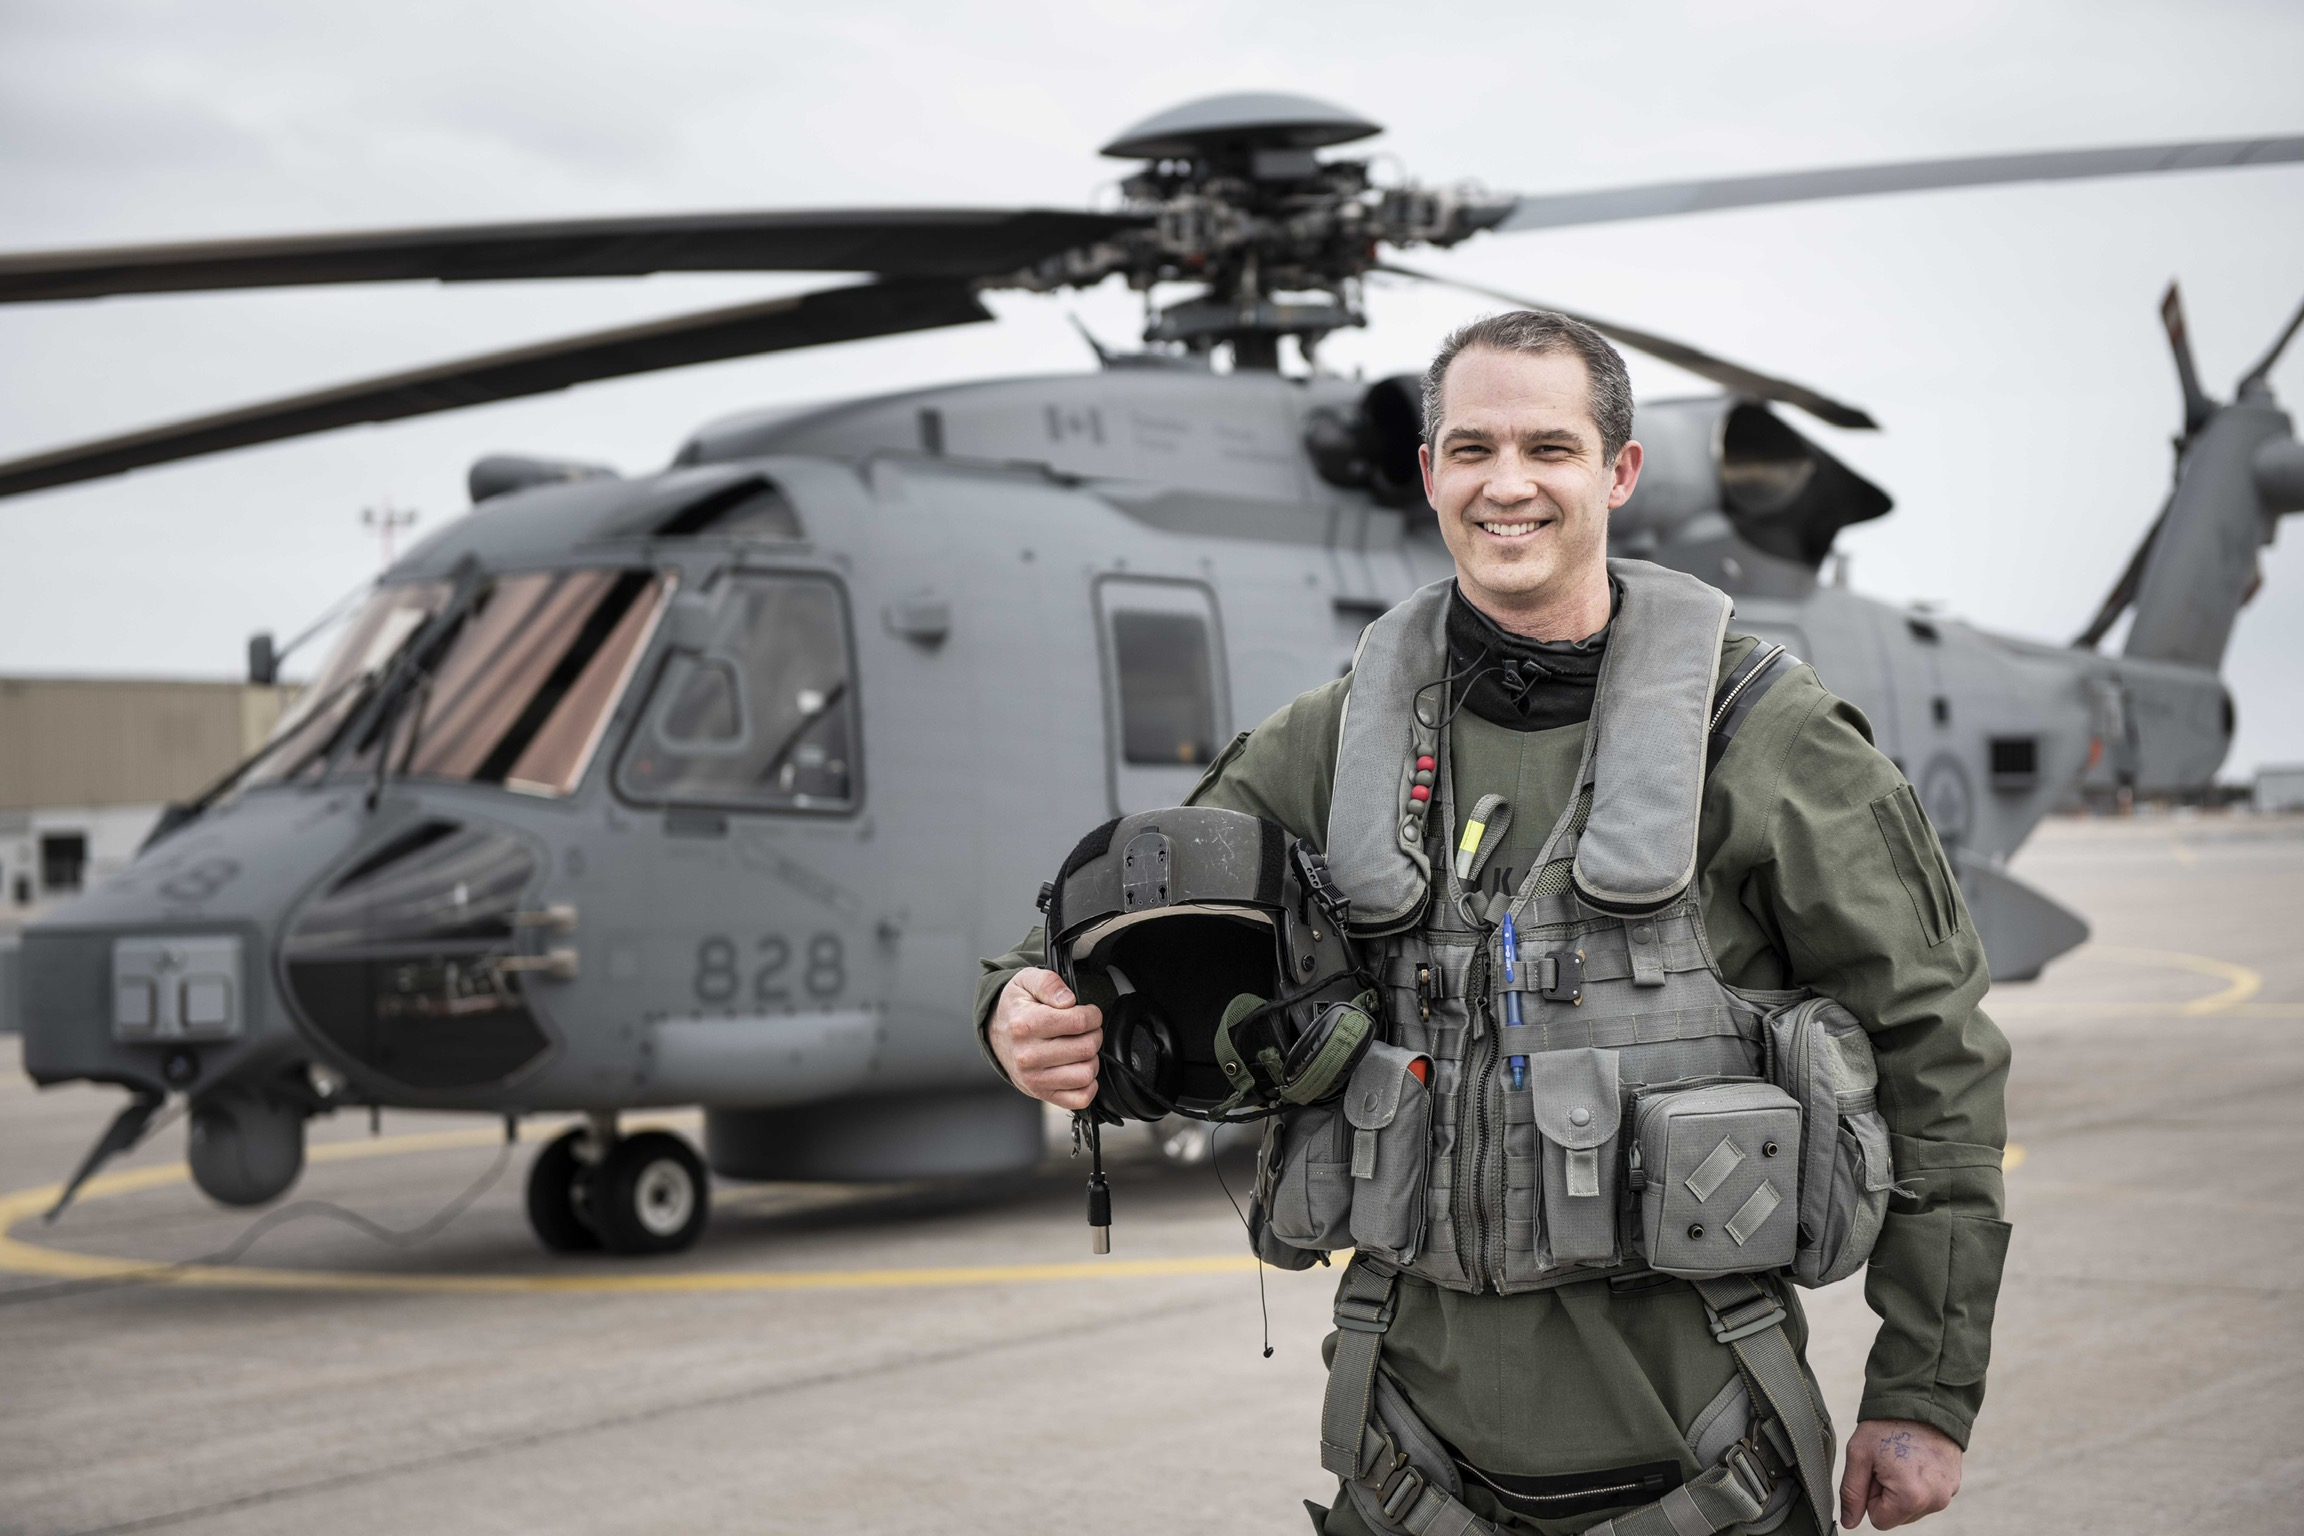 A smiling man in a olive green flight suit holding a pilot's helmet stands in front of a grey helicopter.